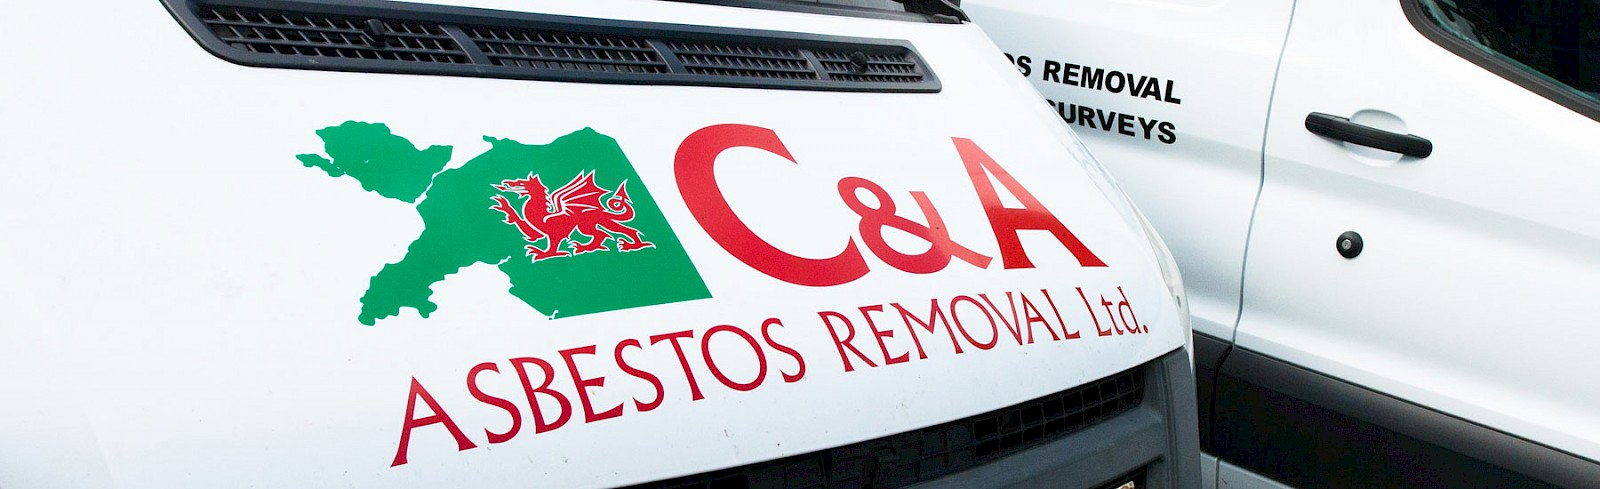 C&A Asbestos Removal Ltd